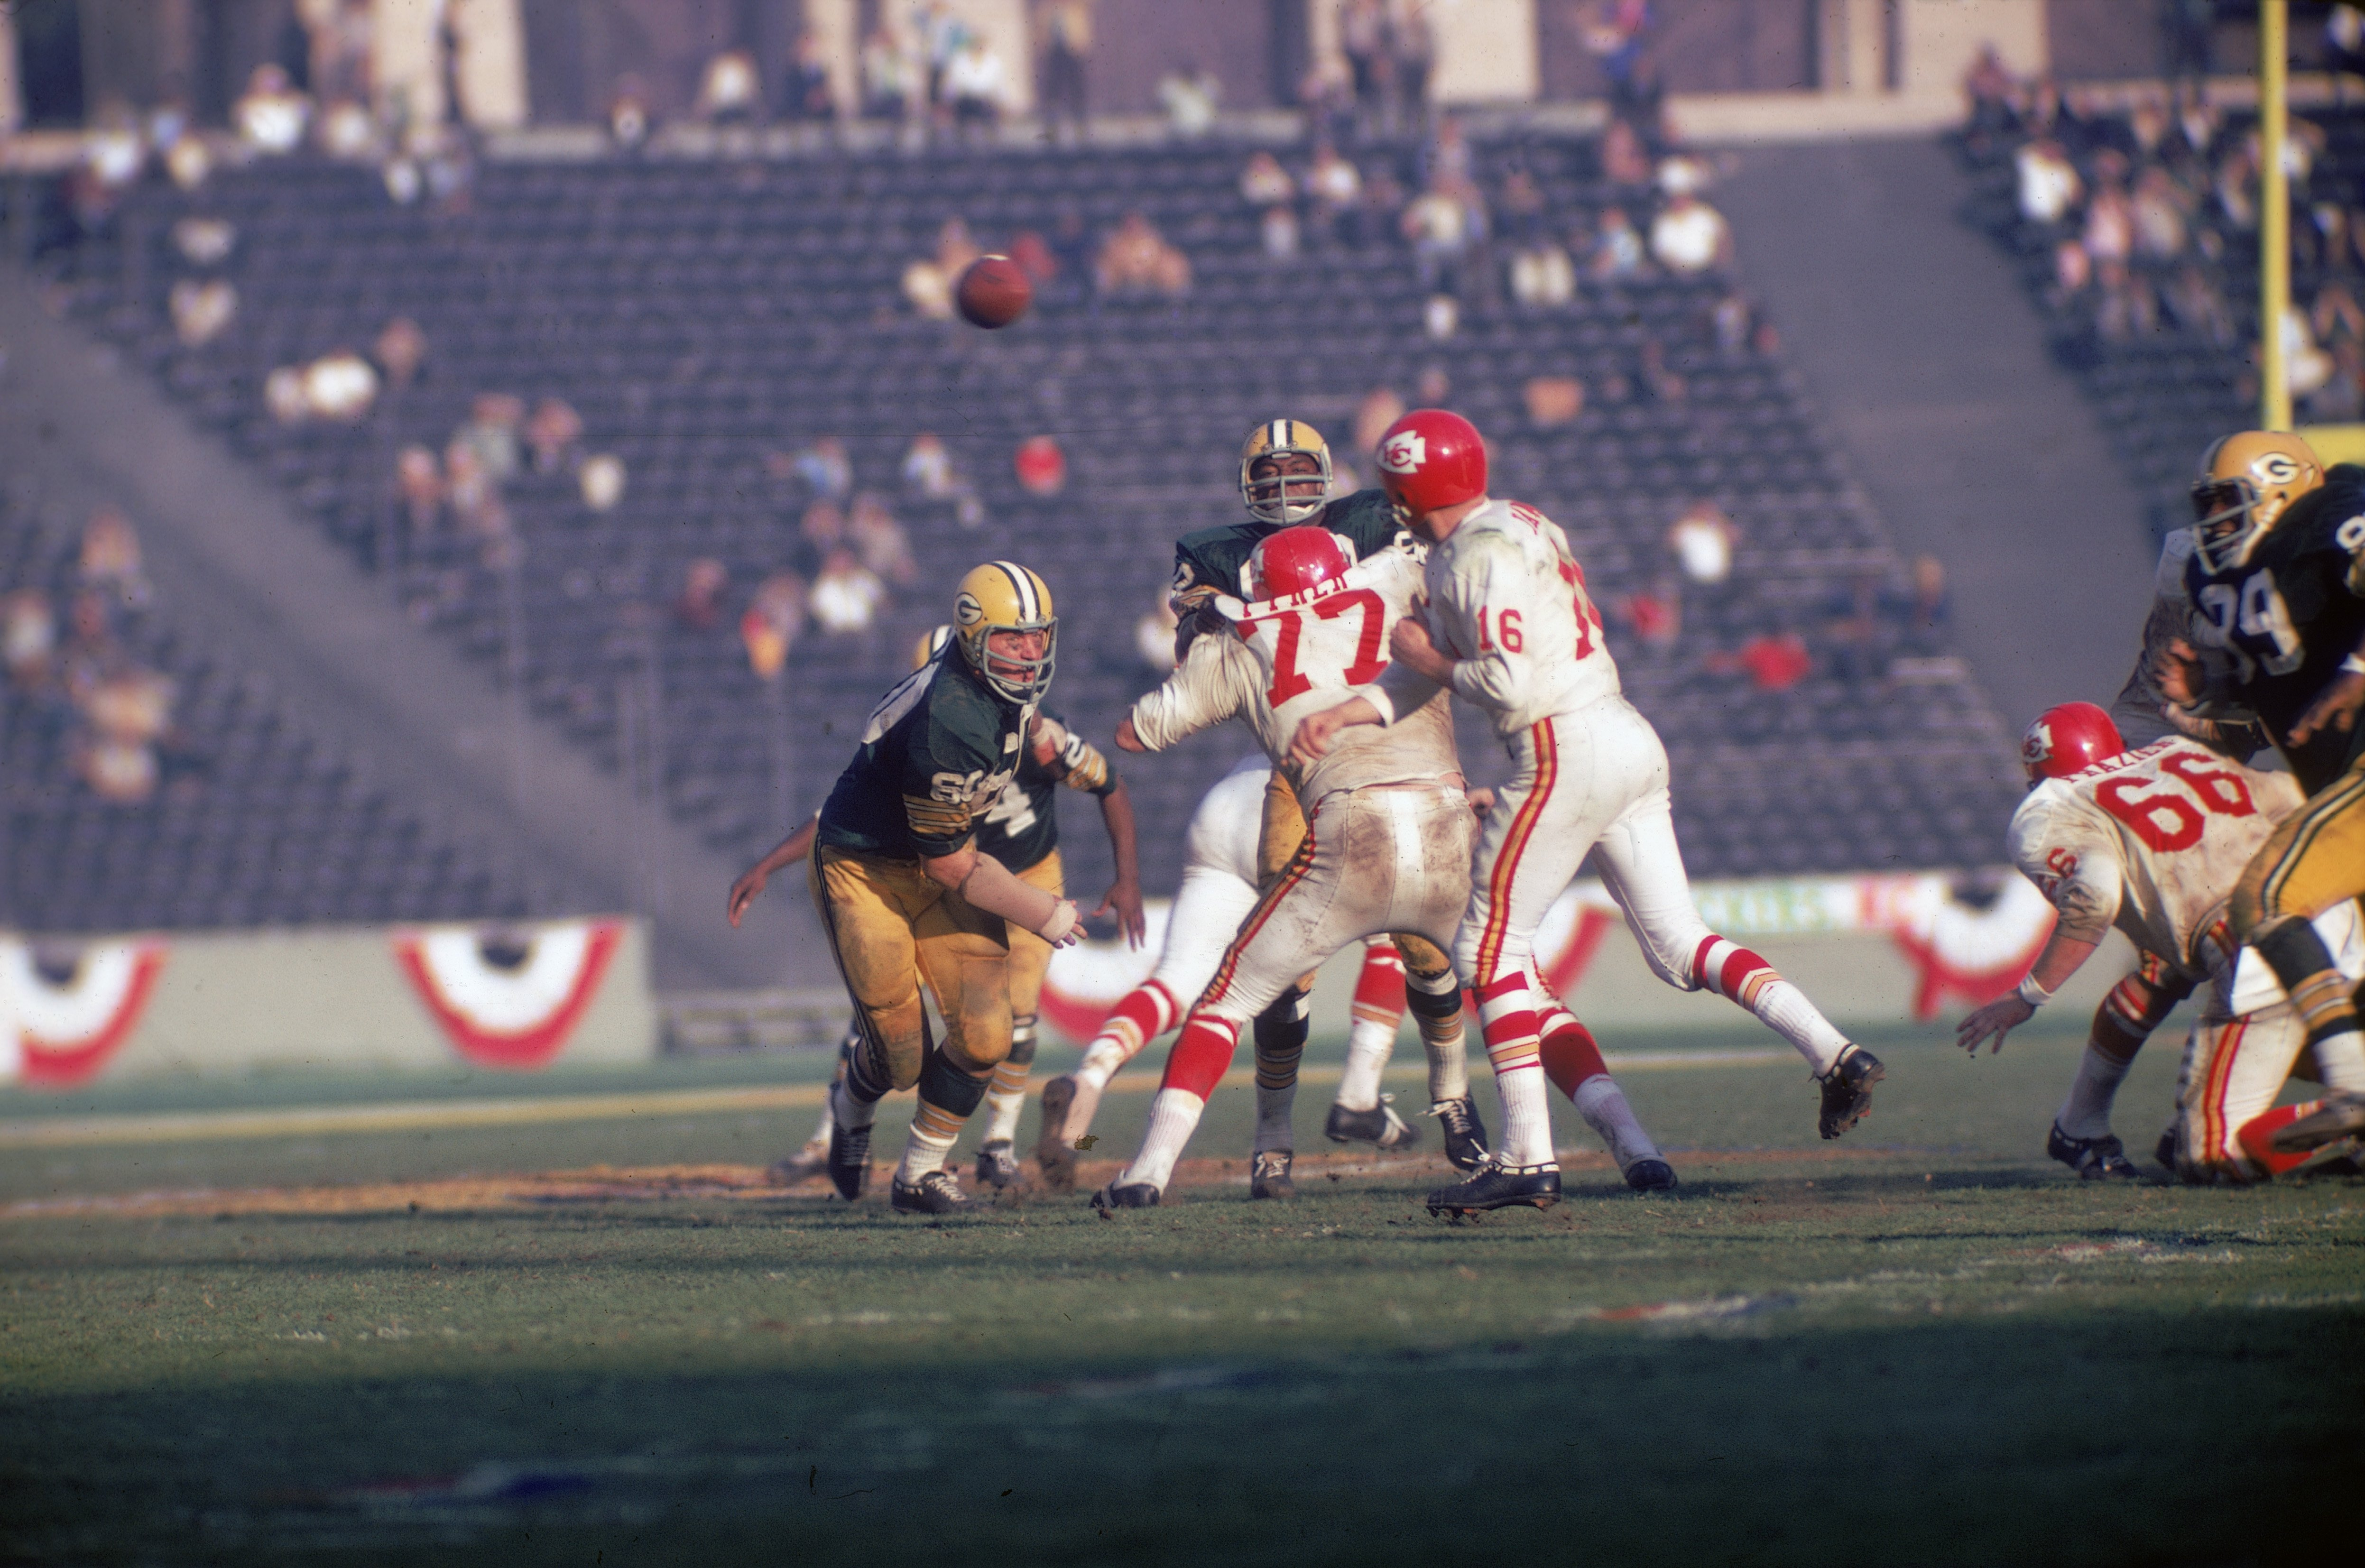 Football player Len Dawson (center, #16 in white), quarterback for the Kansas City Chiefs, throws the ball as opponent Lee Roy Coffey (left, #80) closes in during the Super Bowl, Los Angeles, California, January 15, 1967 | Photo: Getty Images